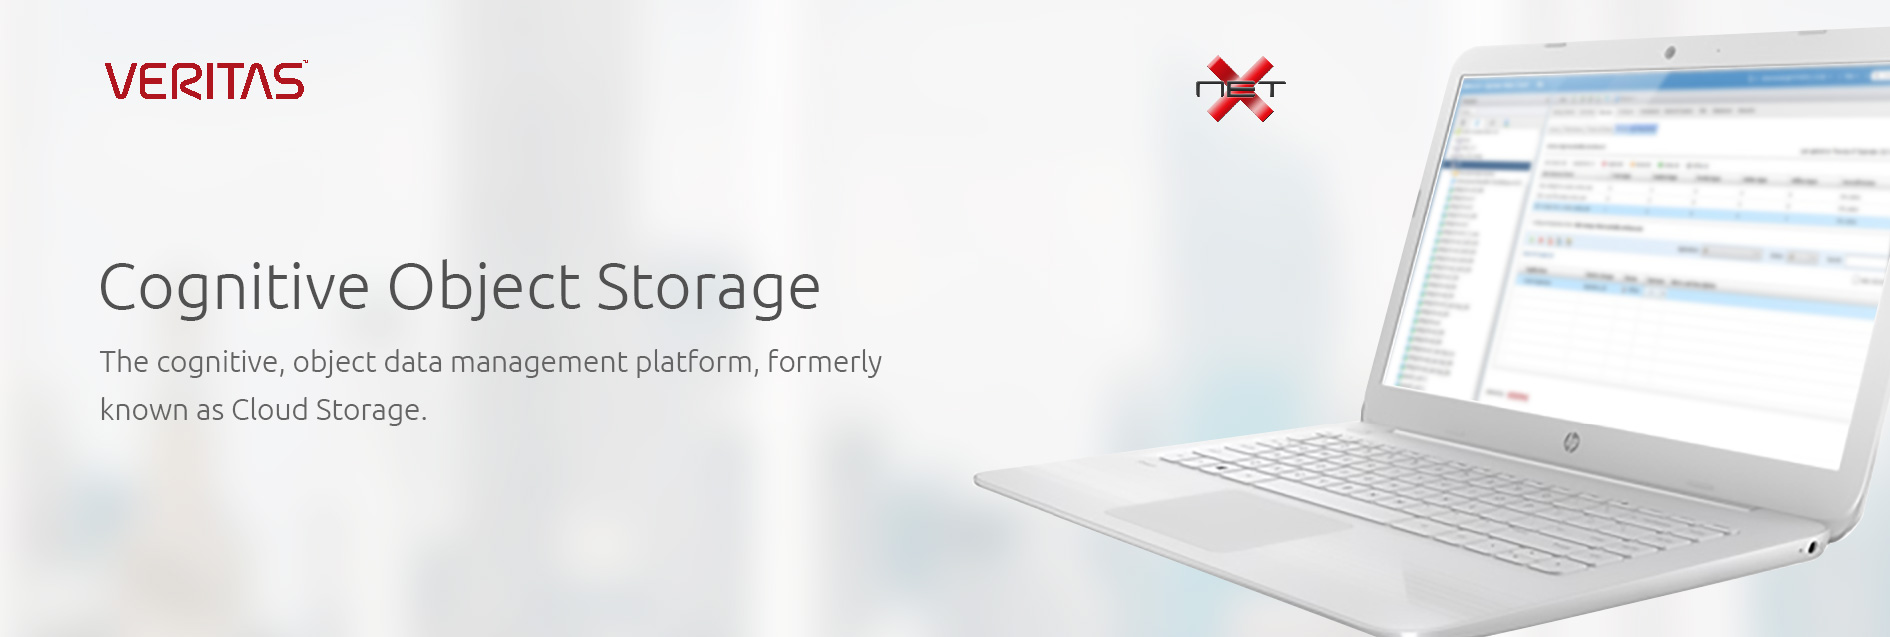 netx-veritas-Cognitive-Object-Storage-banner